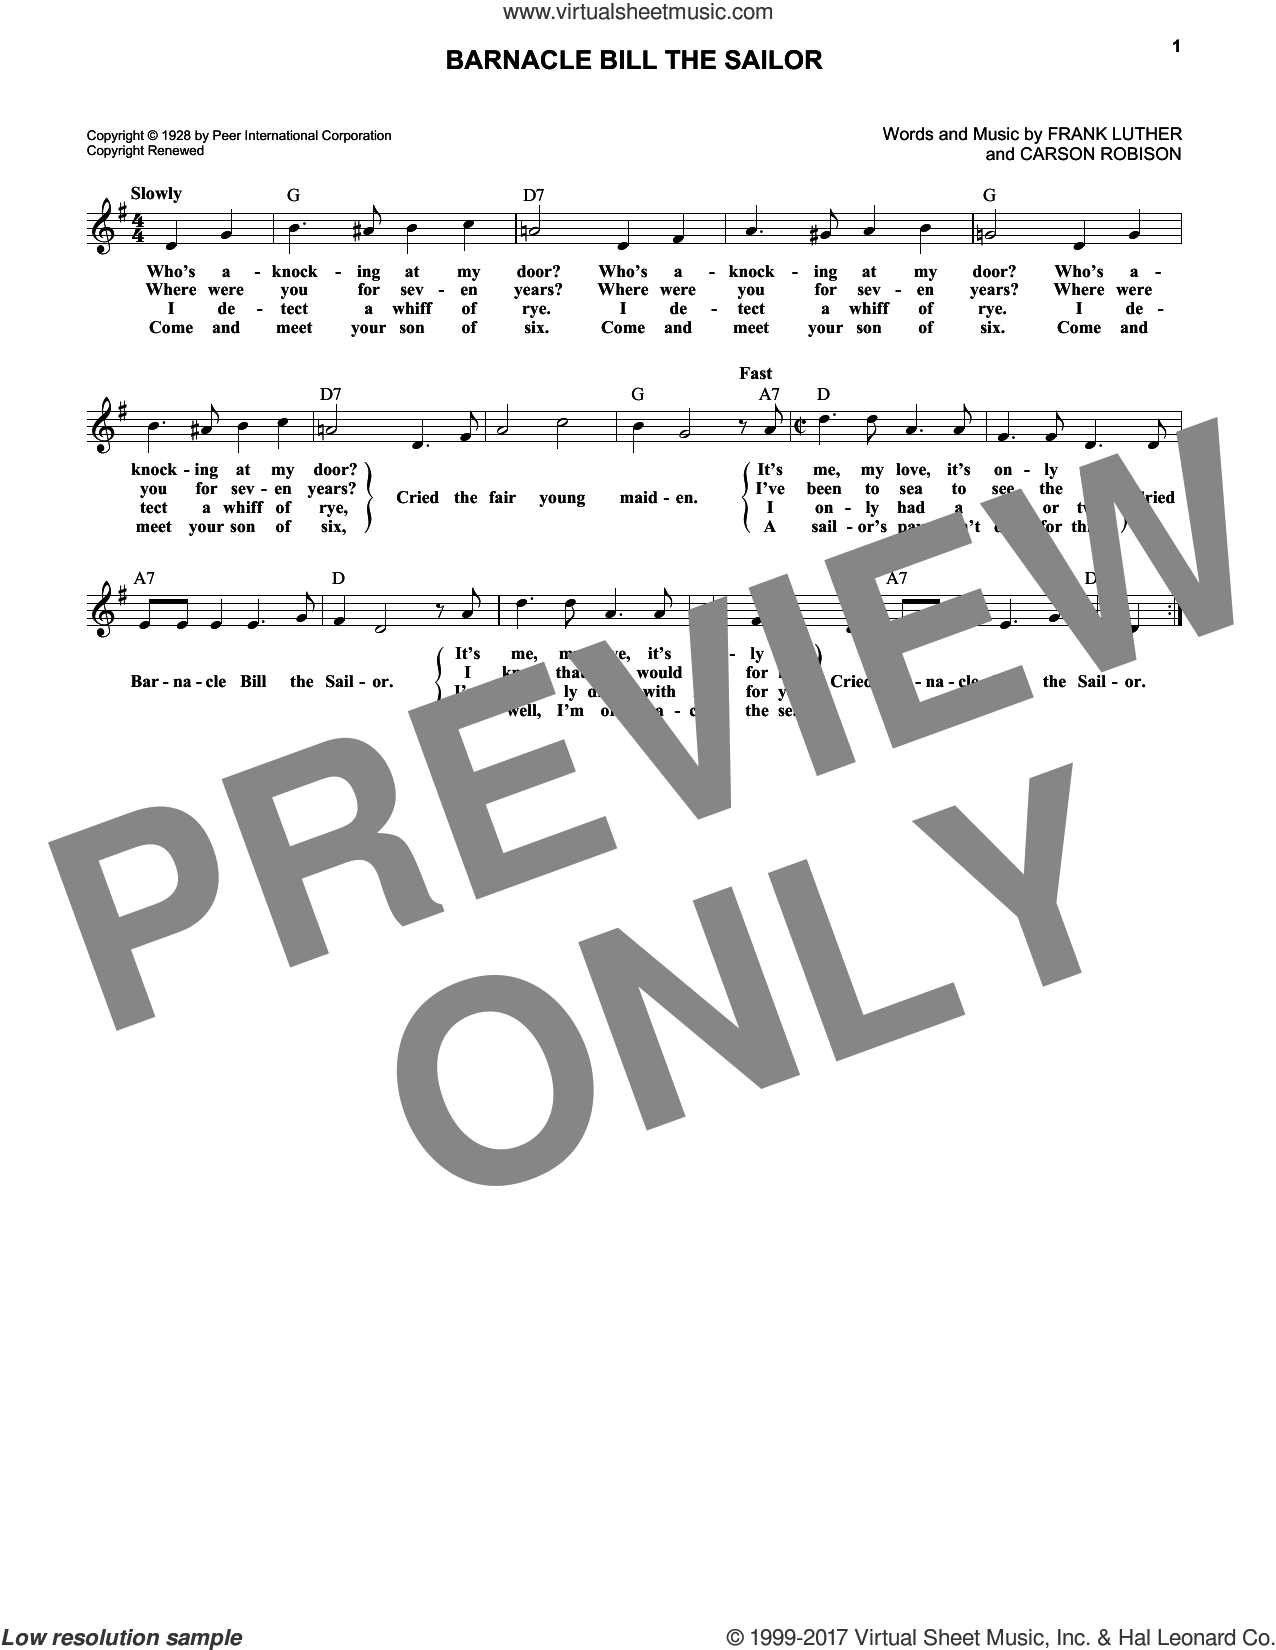 Barnacle Bill The Sailor sheet music for voice and other instruments (fake book) by Frank Luther and Carson Robison, intermediate skill level